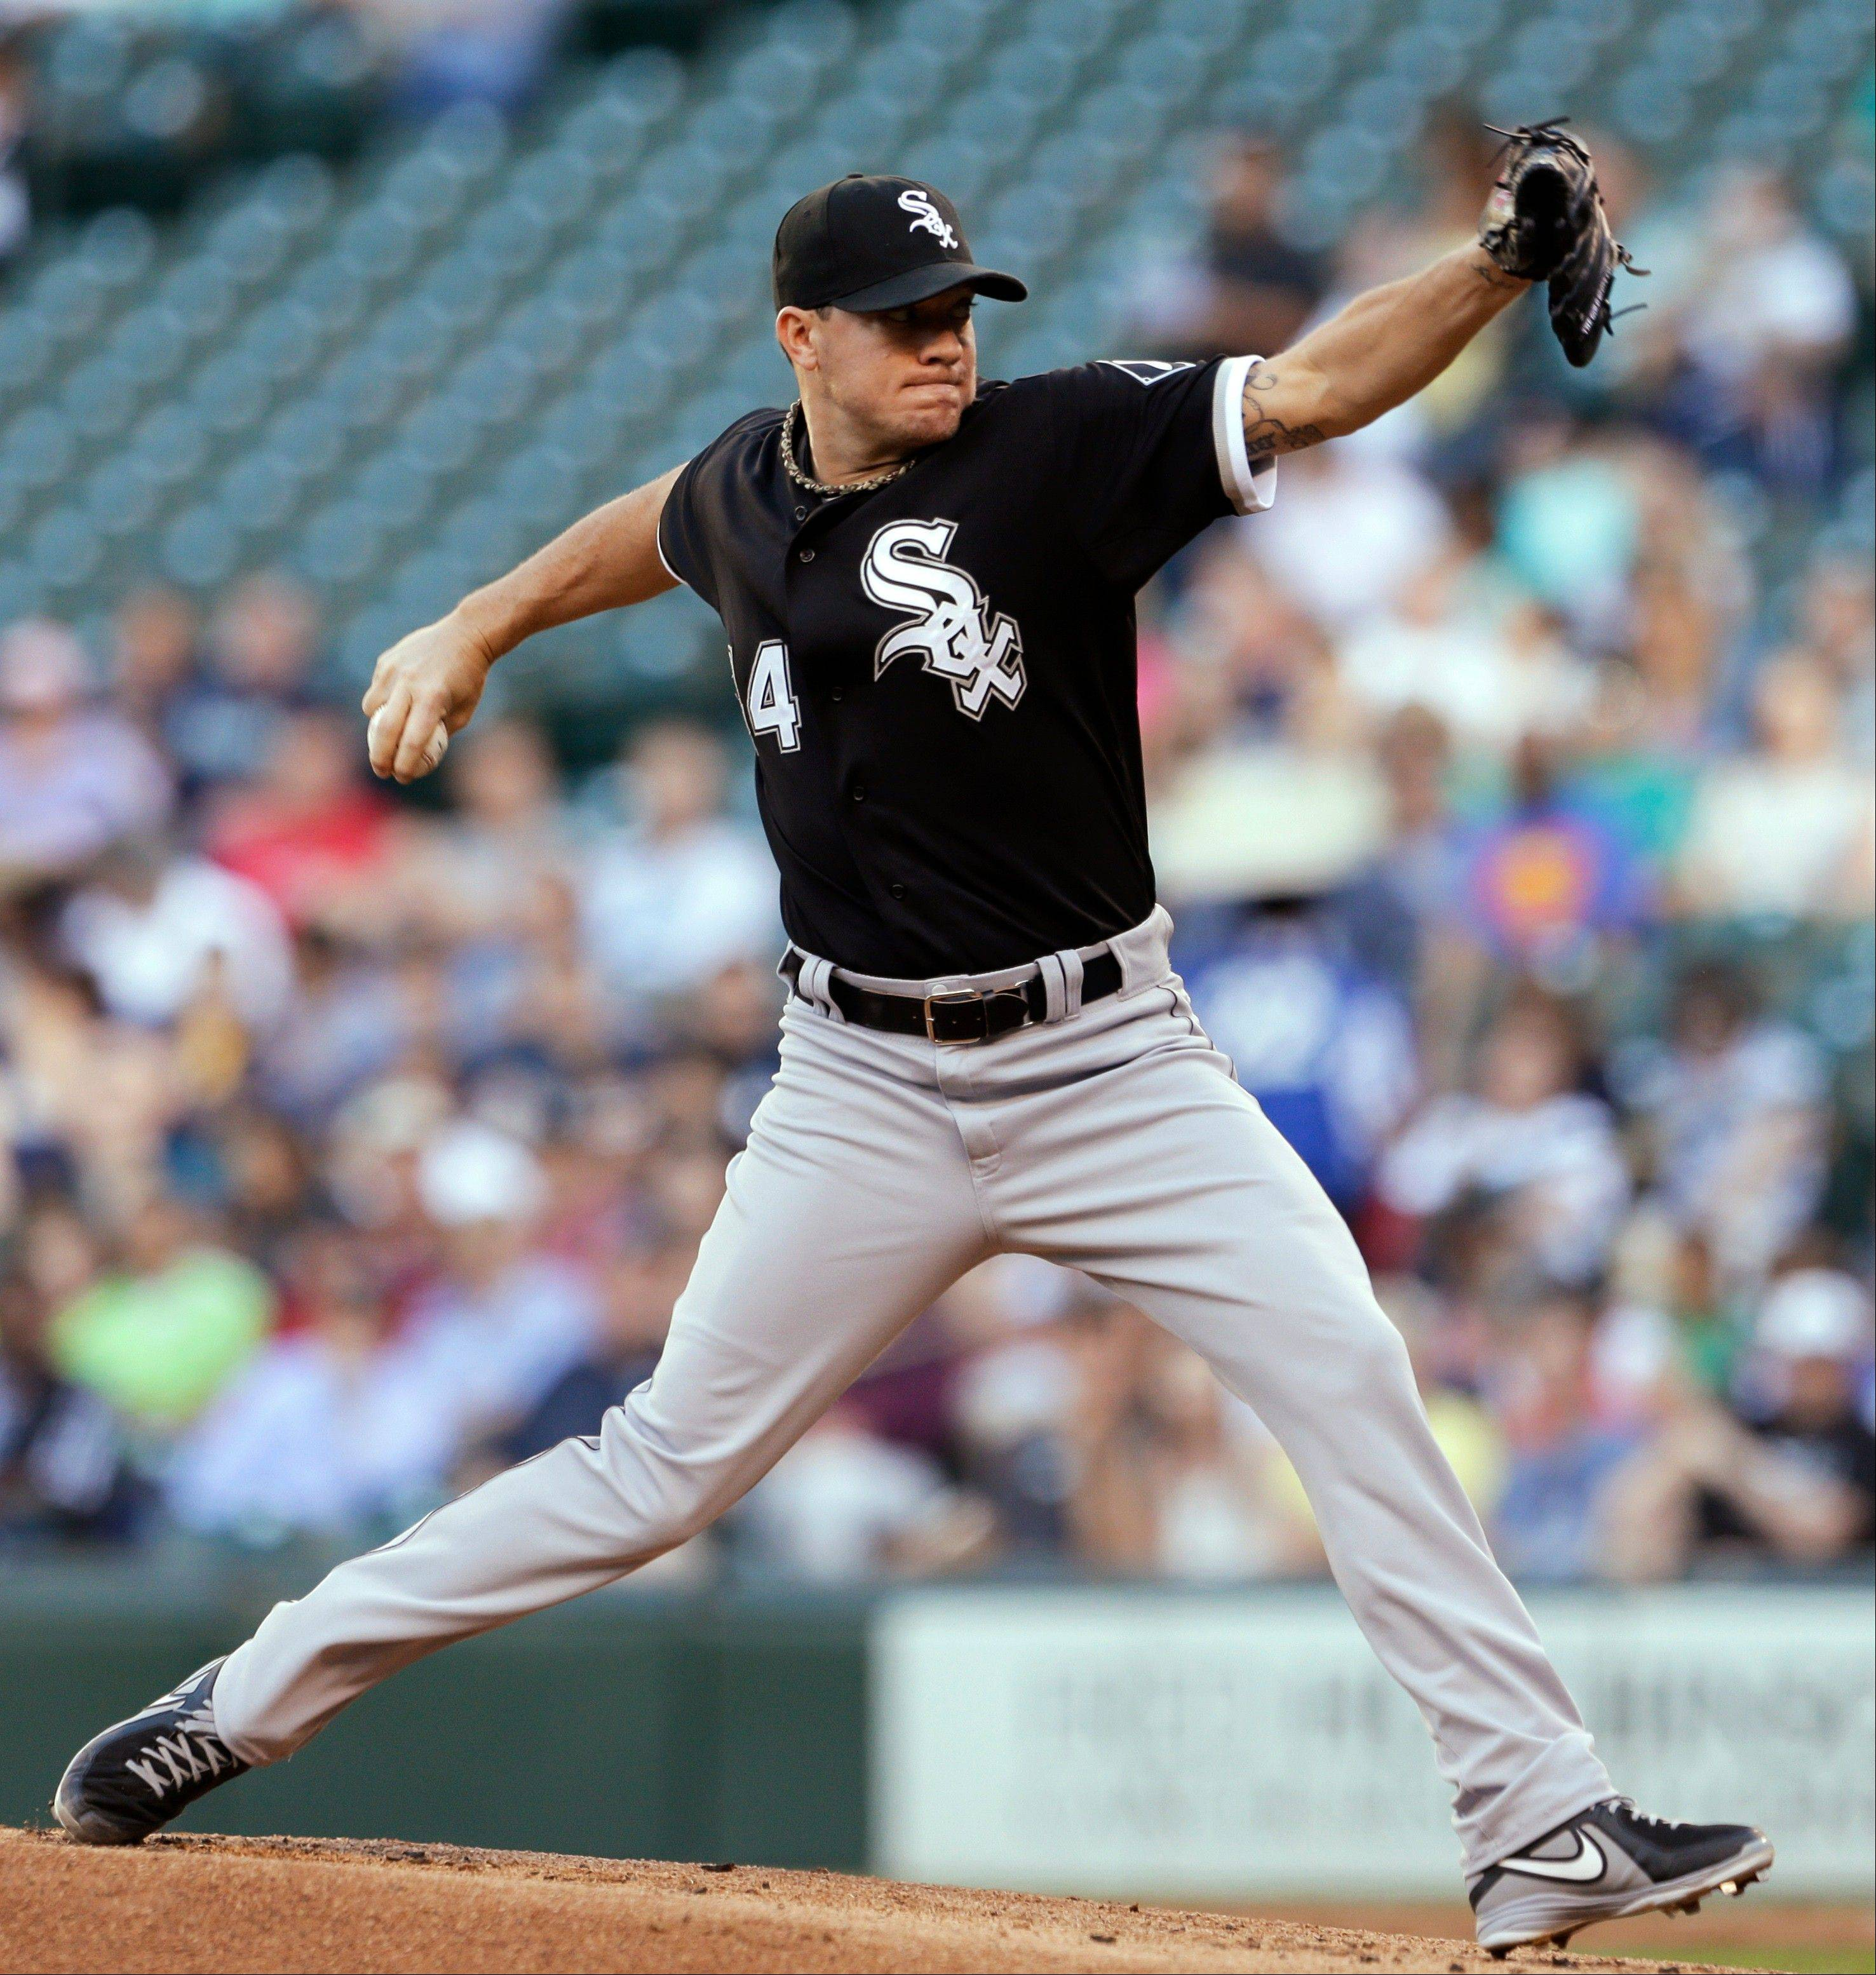 White Sox starting pitcher Jake Peavy will be out 4-6 weeks with a rib injury.